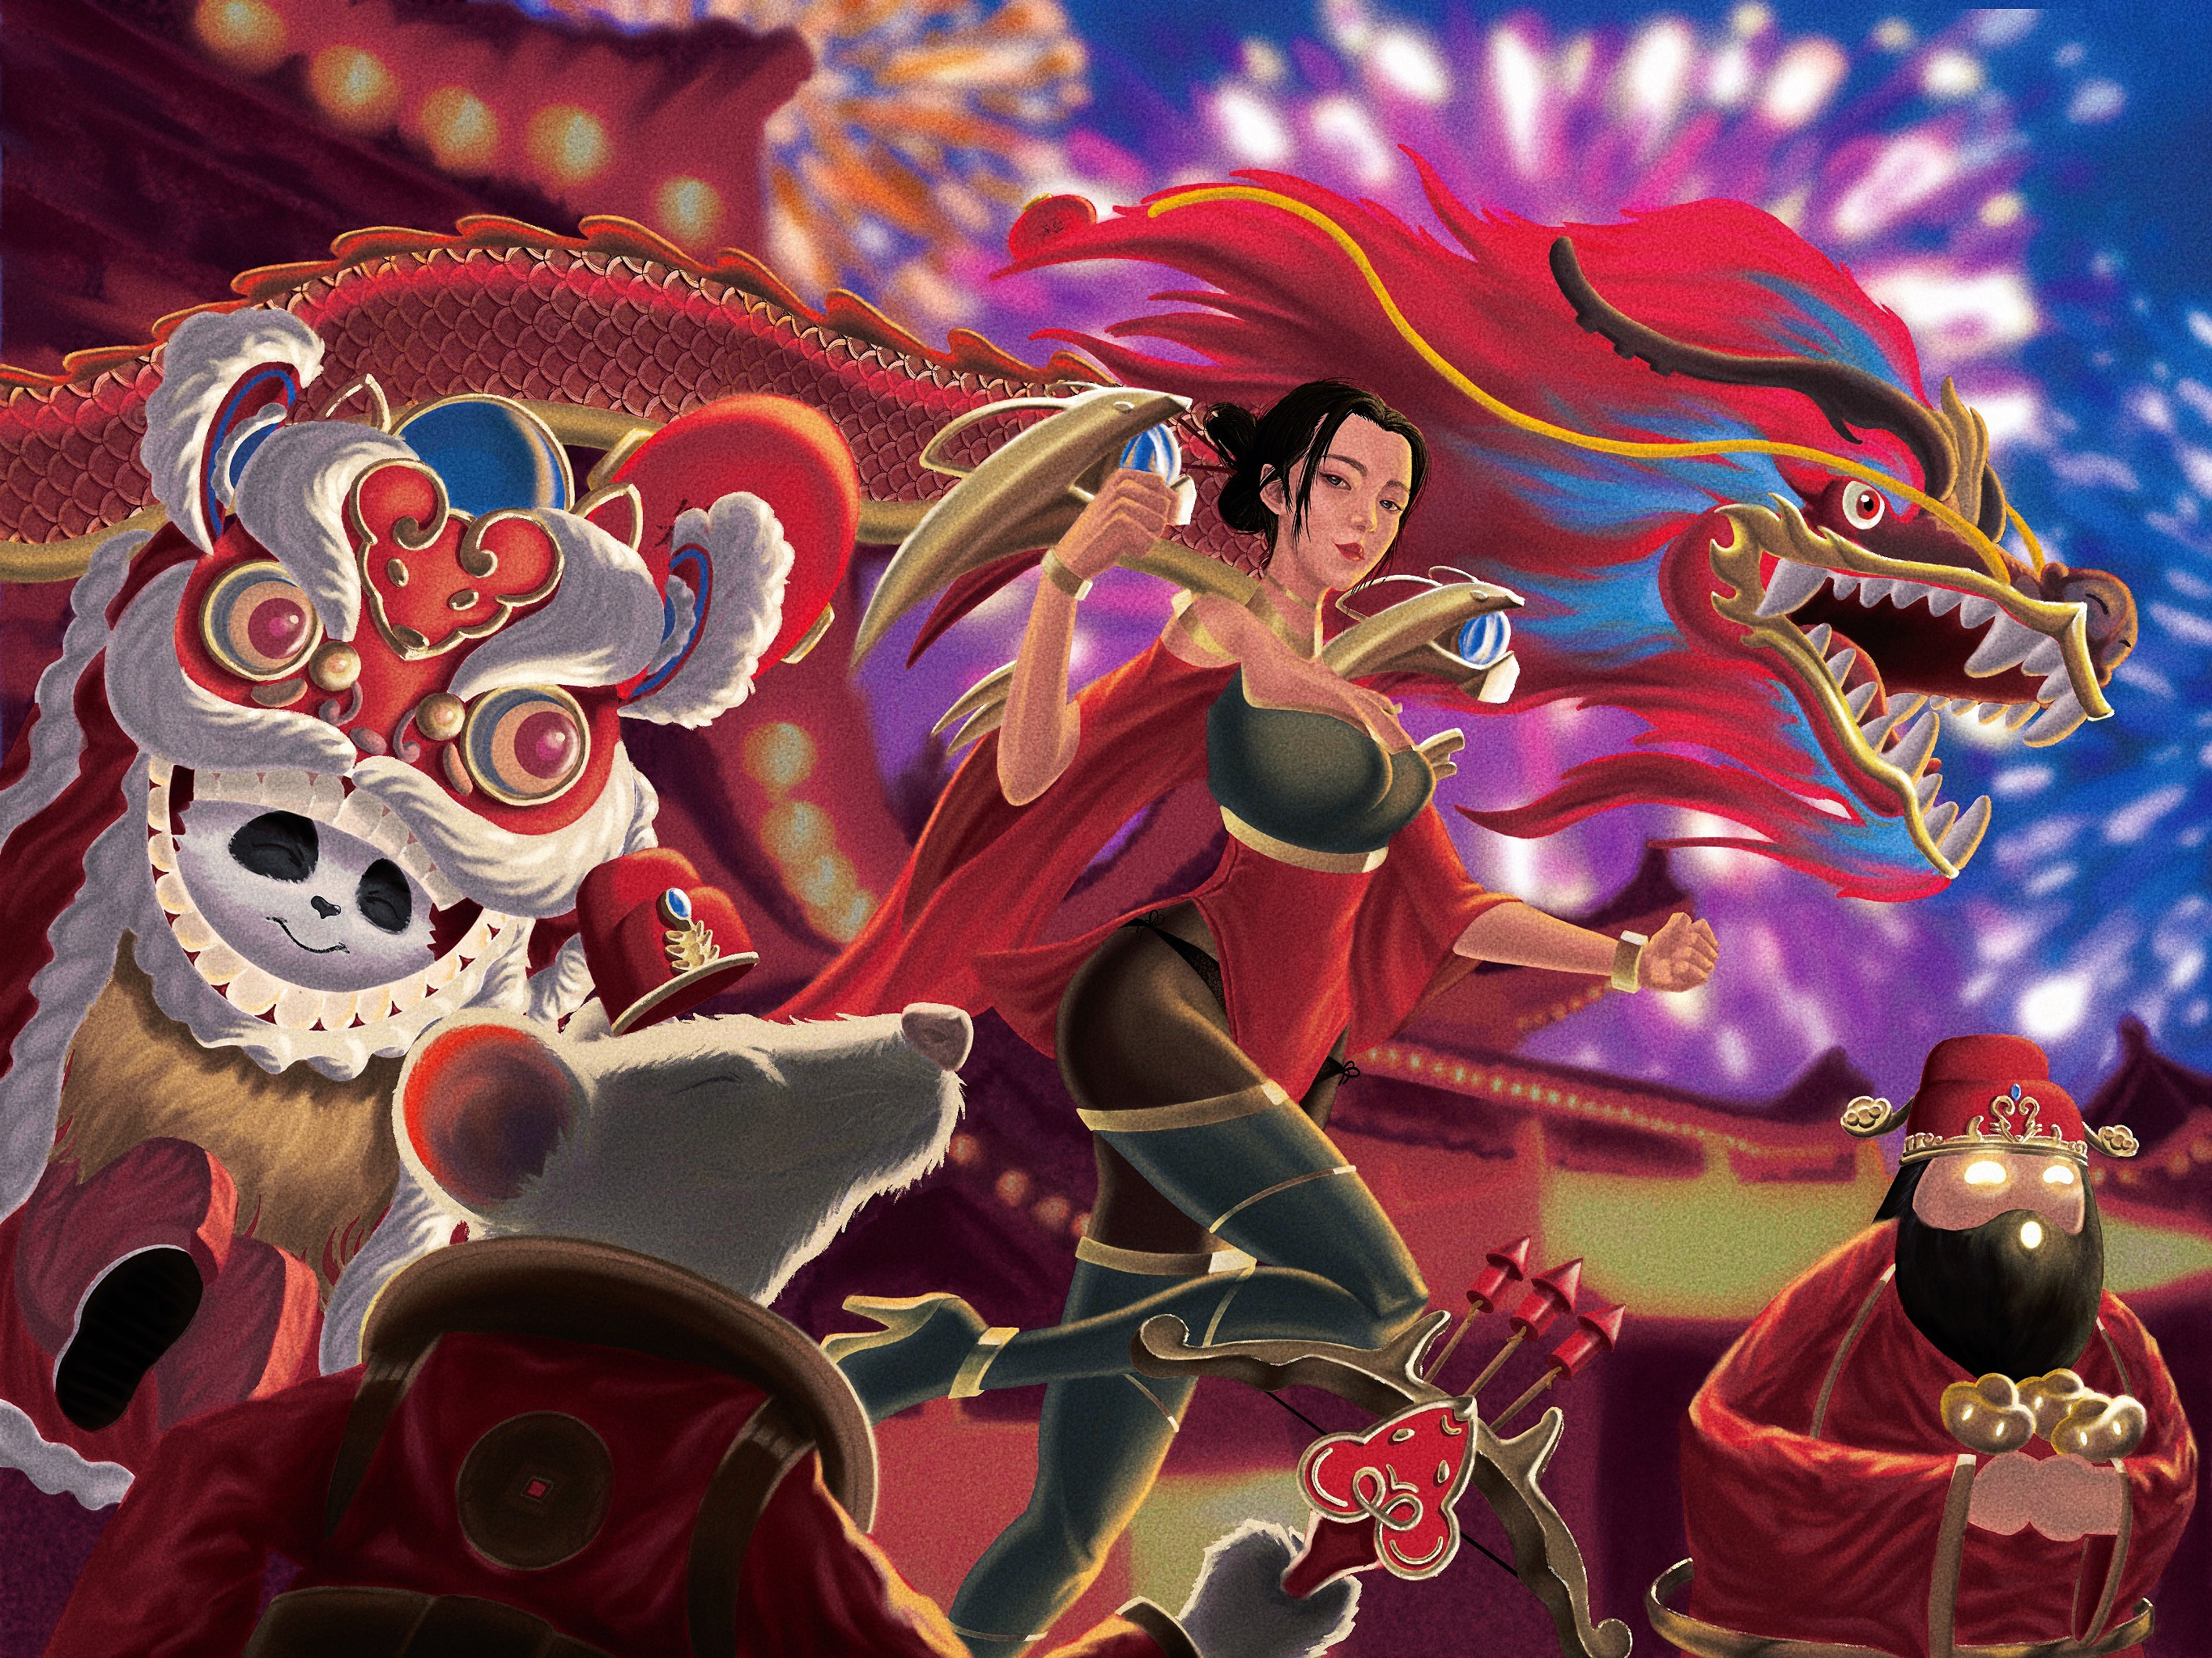 The illustration for my favorite video game League of Legends. I picked five champions from the game and put them into Chinese New Year, the year of rat. All of these designs with Chinese and rat elements inside.